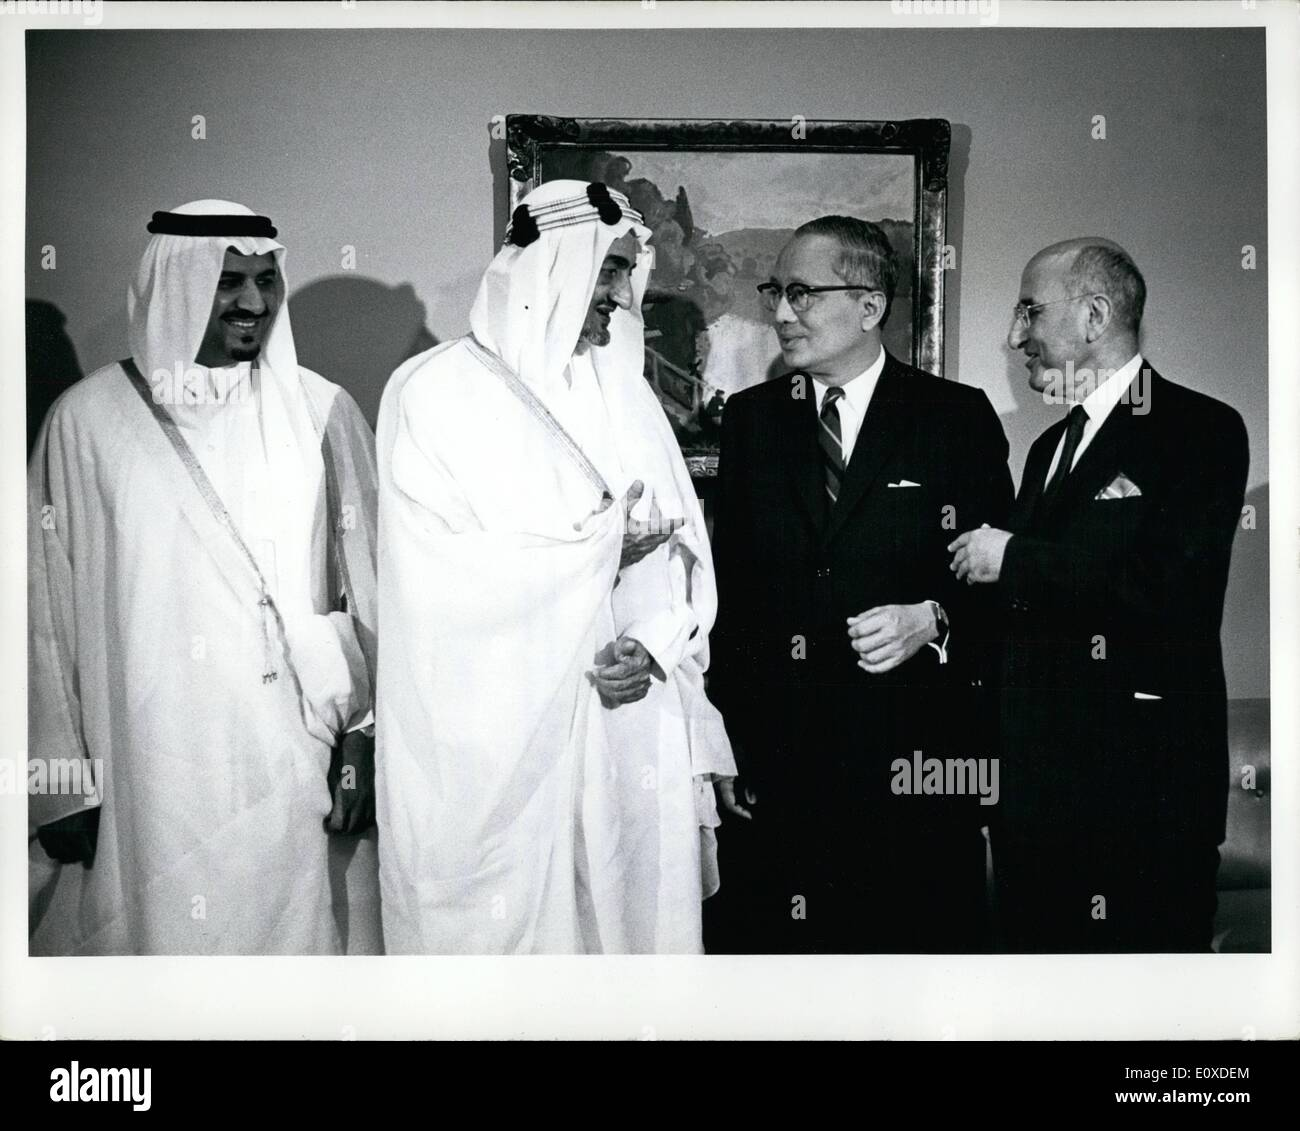 Jun. 06, 1966 - His majesty Faisal Bin Abdulaziz visits UN headquarters: His majesty Faisal Bin Abdulaziz, King of Saudi Arabia, paid an official visit to United Nations Headquarters today. He was accompanied in his visit by the Minister of Defence, Prince Sultan Bin Abdulaziz; a Royal Counsellor; and the Deputy Permanent Representative of Saudi Arabia to the United Nations, Jamil M. Baroody, During his visit, King Faisal conferred with the Secretary-General and was his guest at a luncheon. King Faisal conversing with Secretary-Genral U Thant - Stock Image